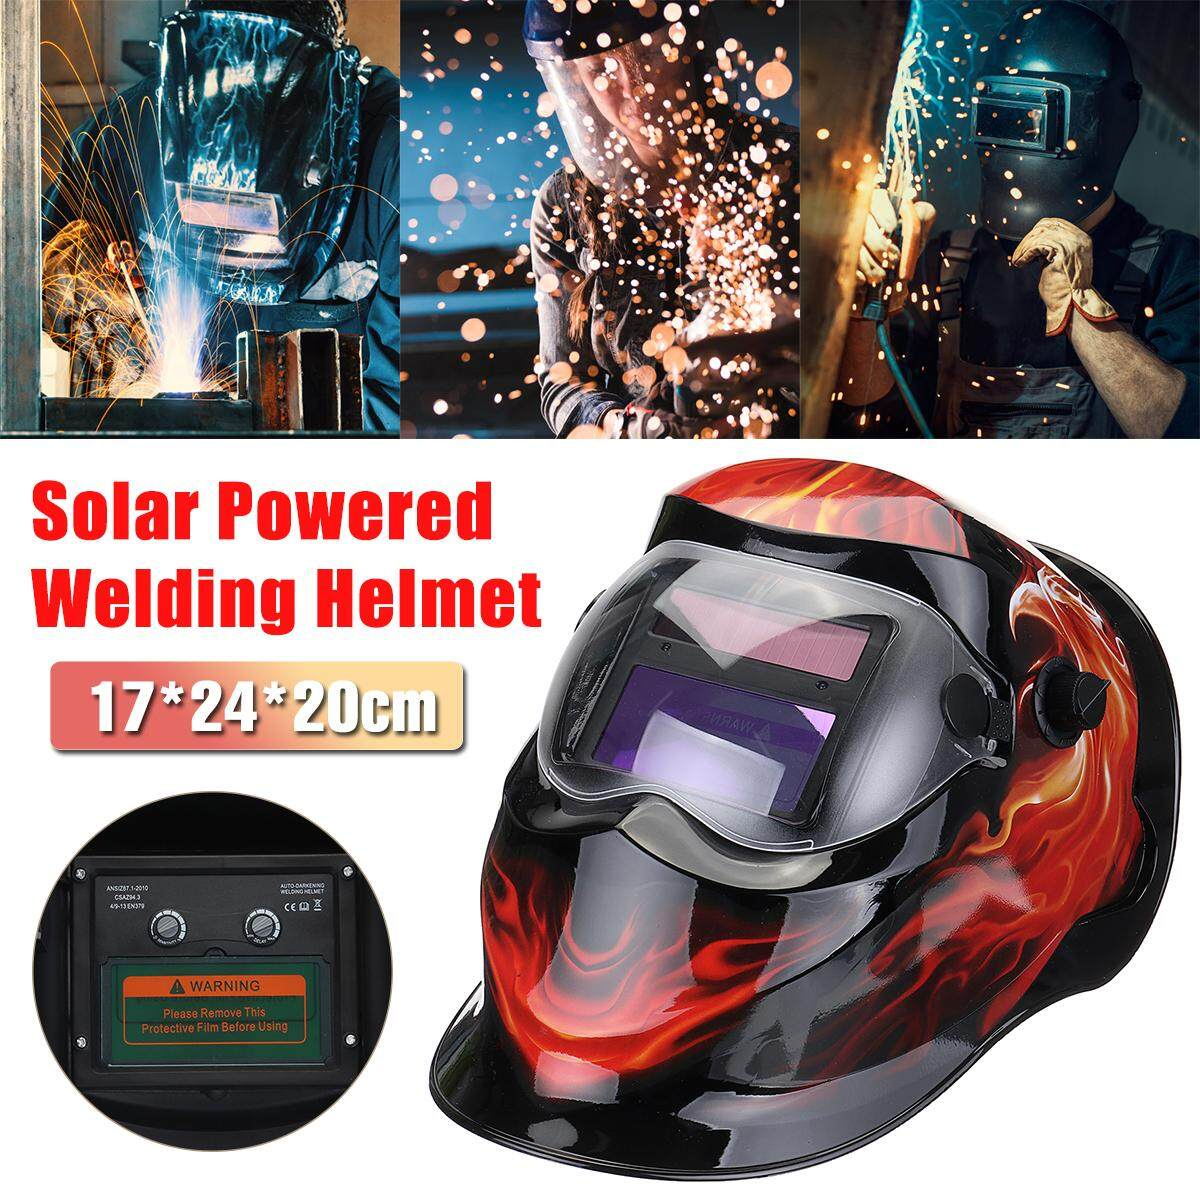 【Free Shipping + Flash Deal】Solar Power Automatic Dimming Welding Helmet Welder Mask Adjustable Head Band PP